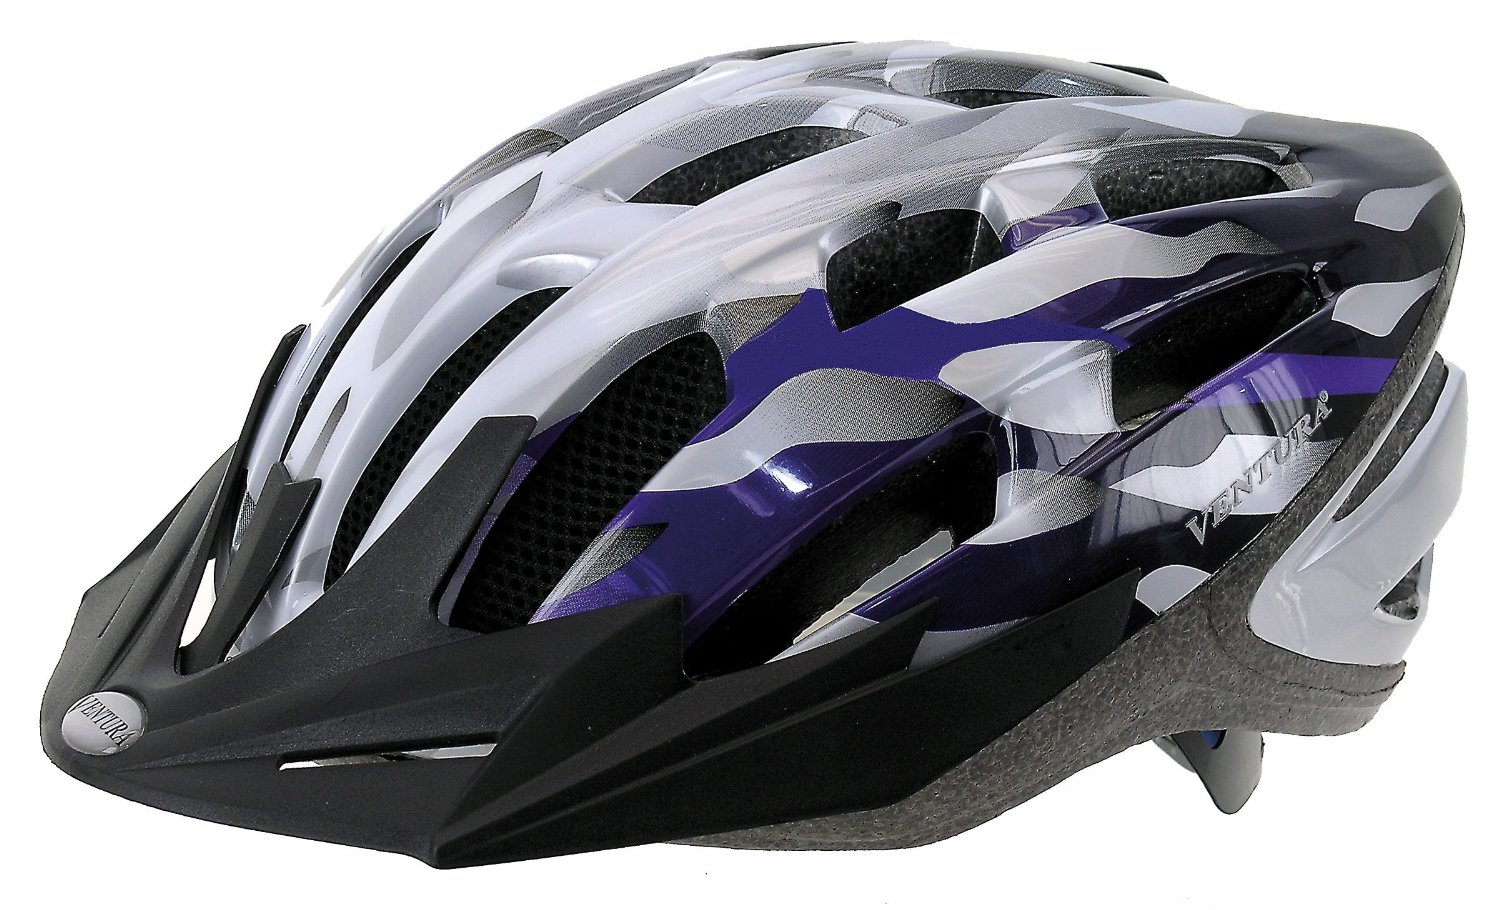 Sizes of Ventura Bicycle Helmets